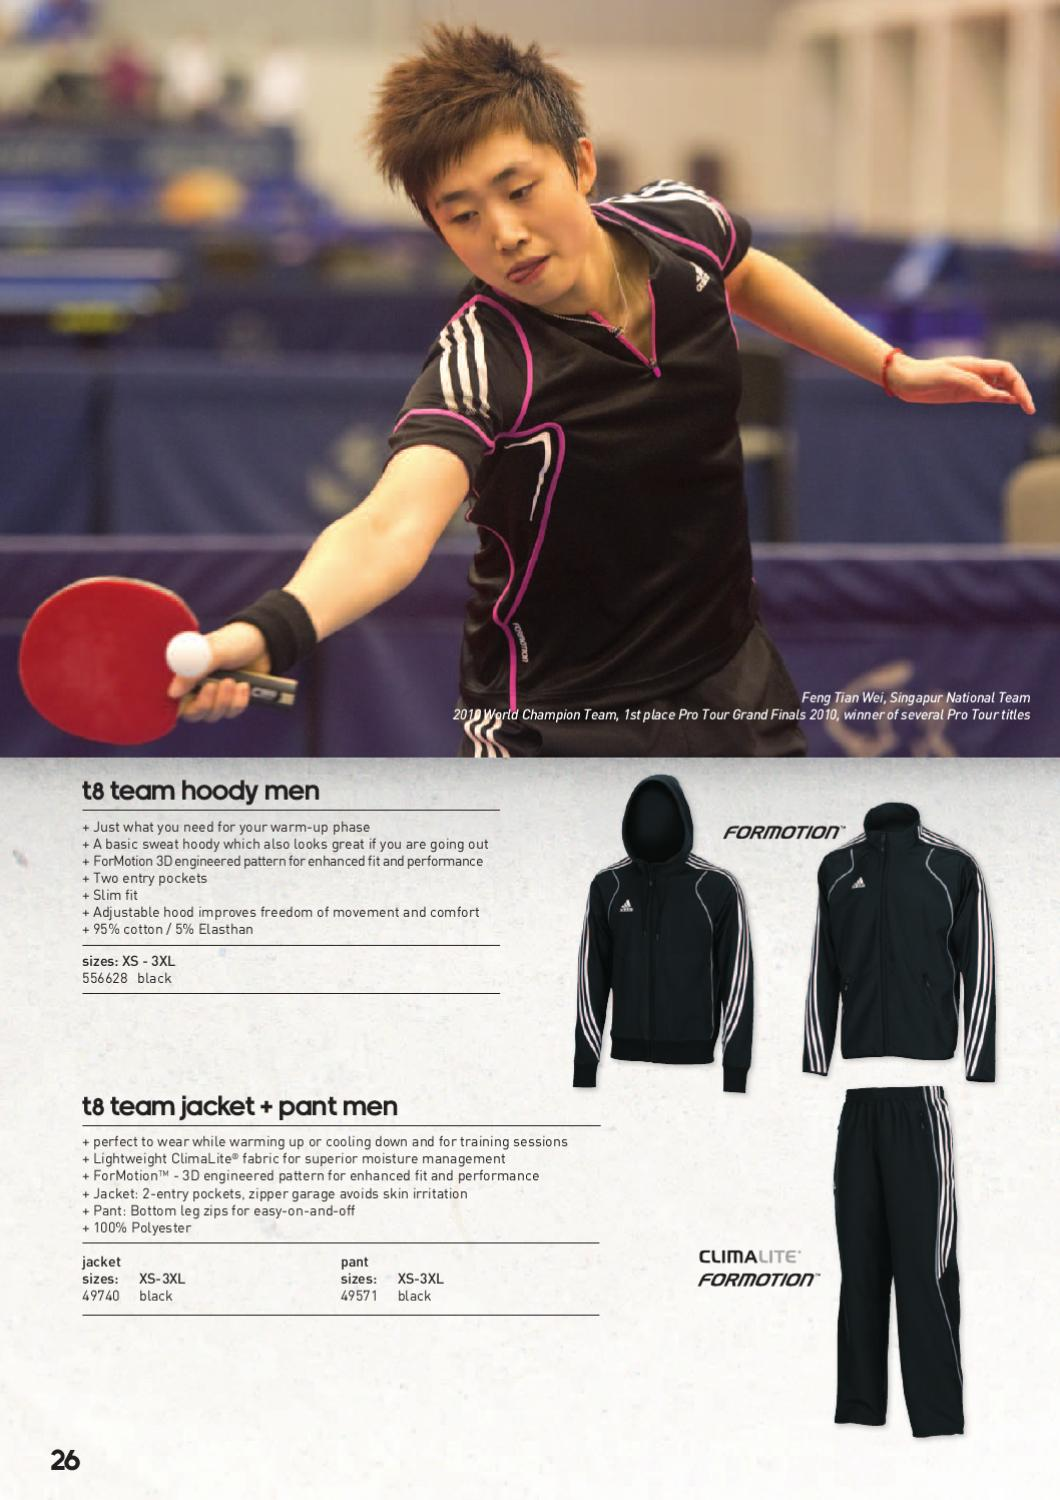 f8e9a1b5e20 Adidas Table Tennis by LivingSport A S - issuu